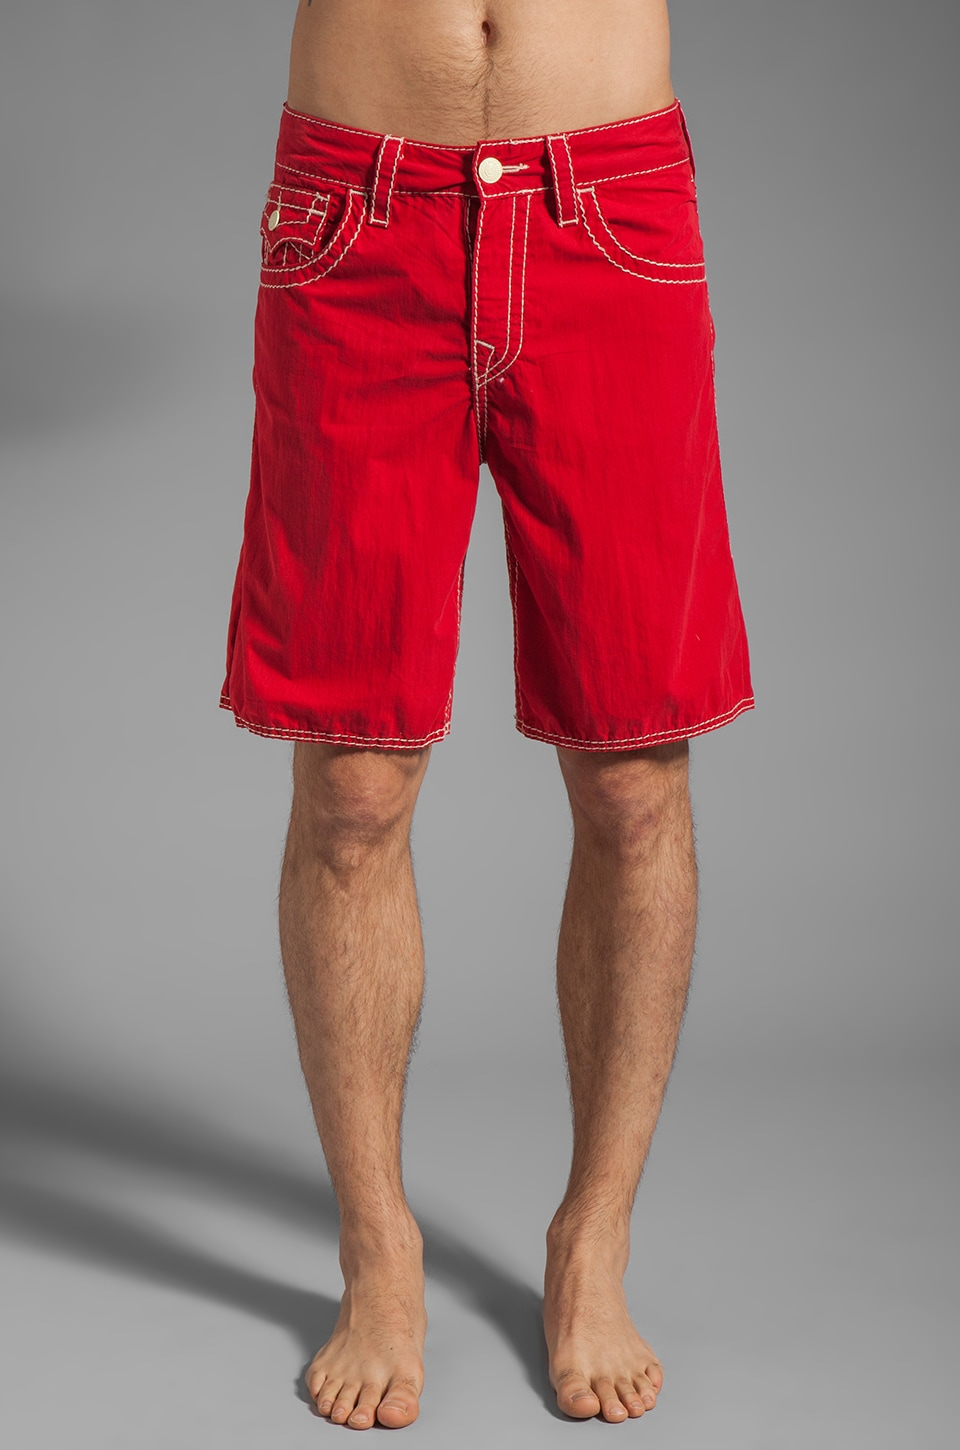 True Religion 5 Pocket Big T Boardshort in Red